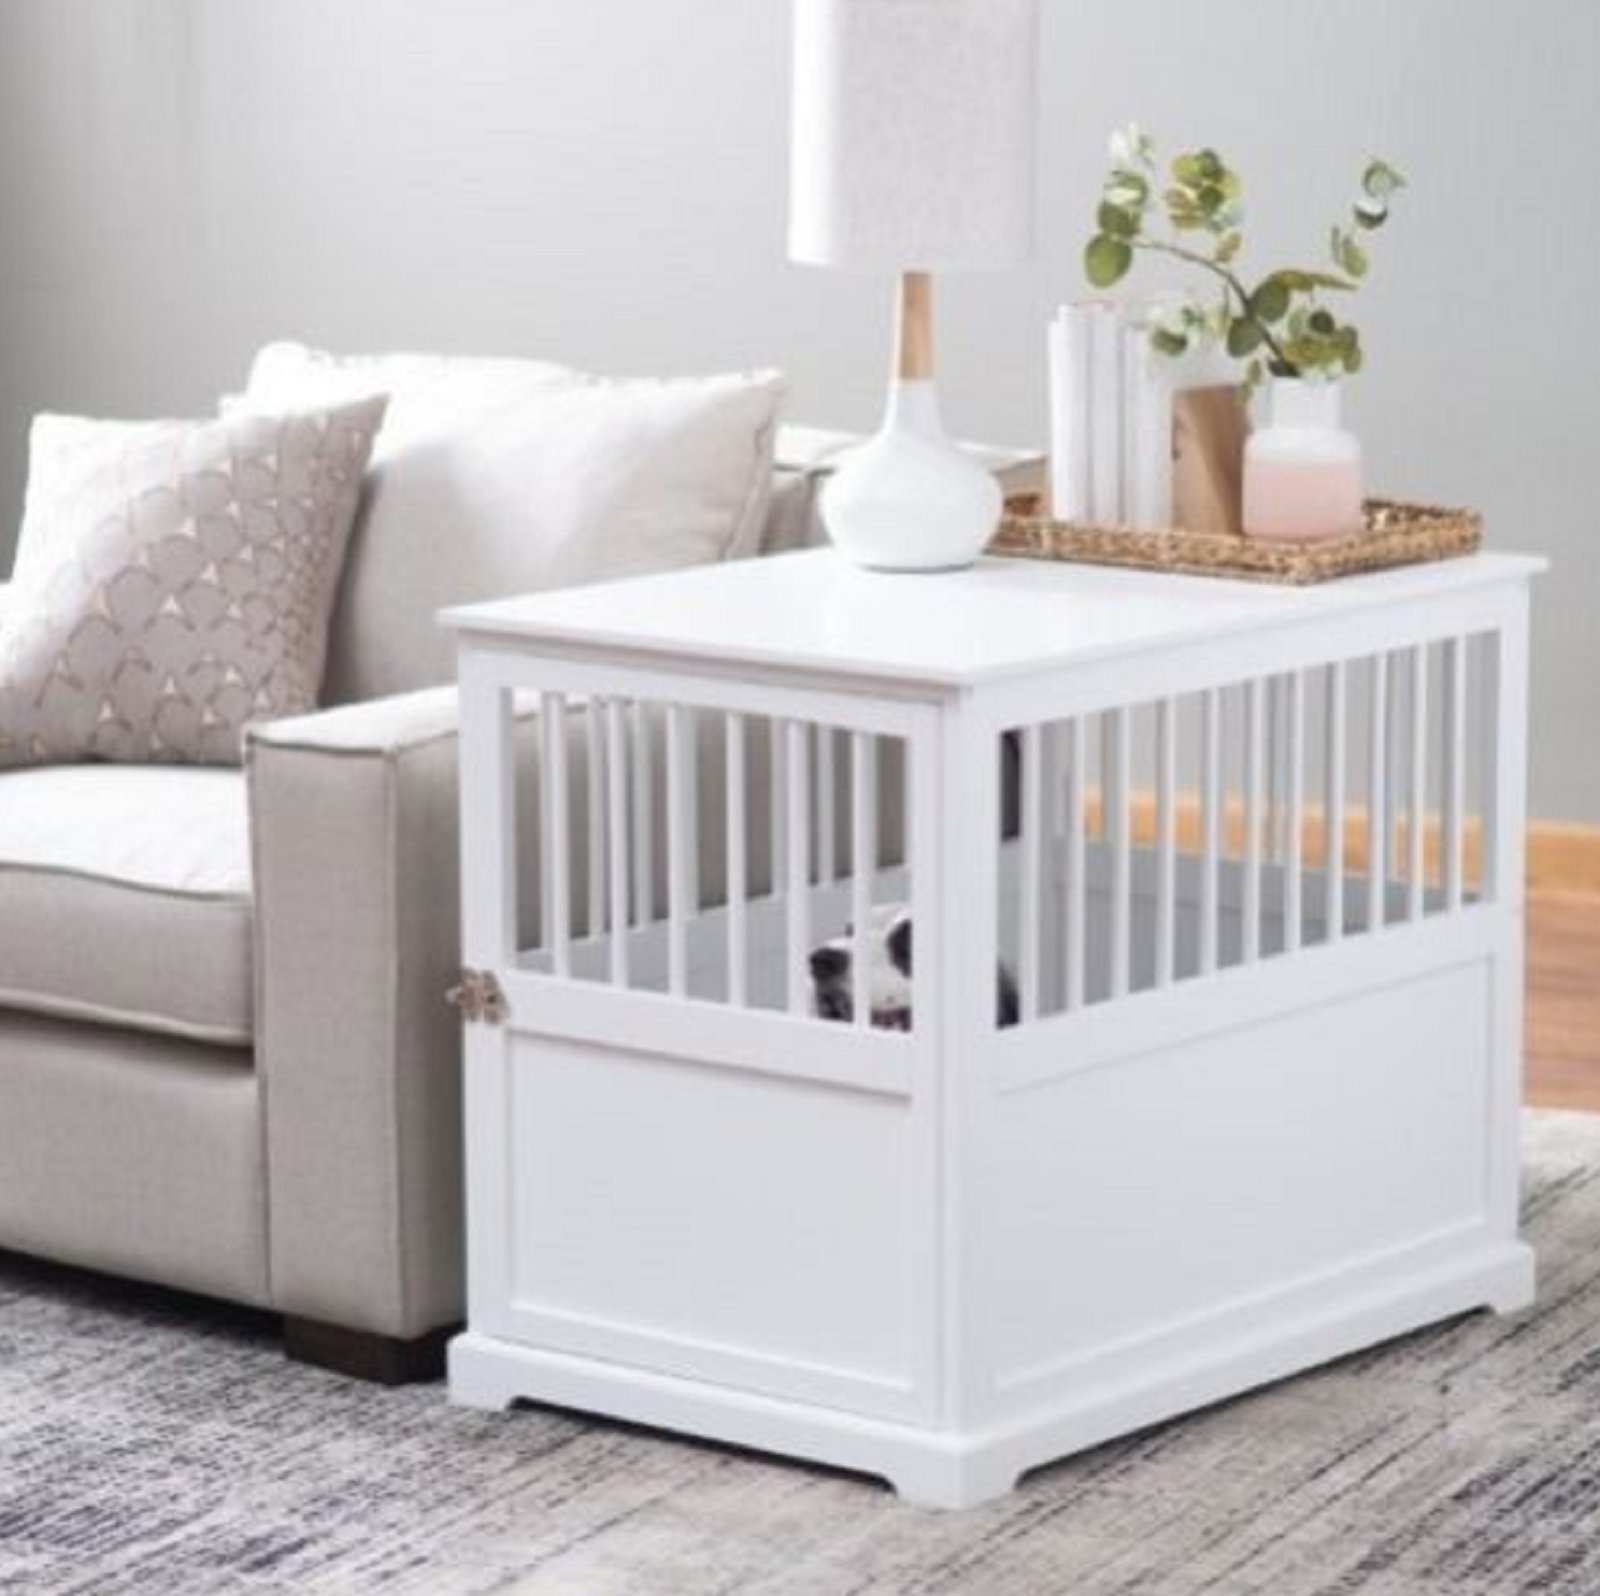 NEW! Furniture Pet Crate Dog Kennel White Medium End Table Wood Cage Puppy Bed Wooden